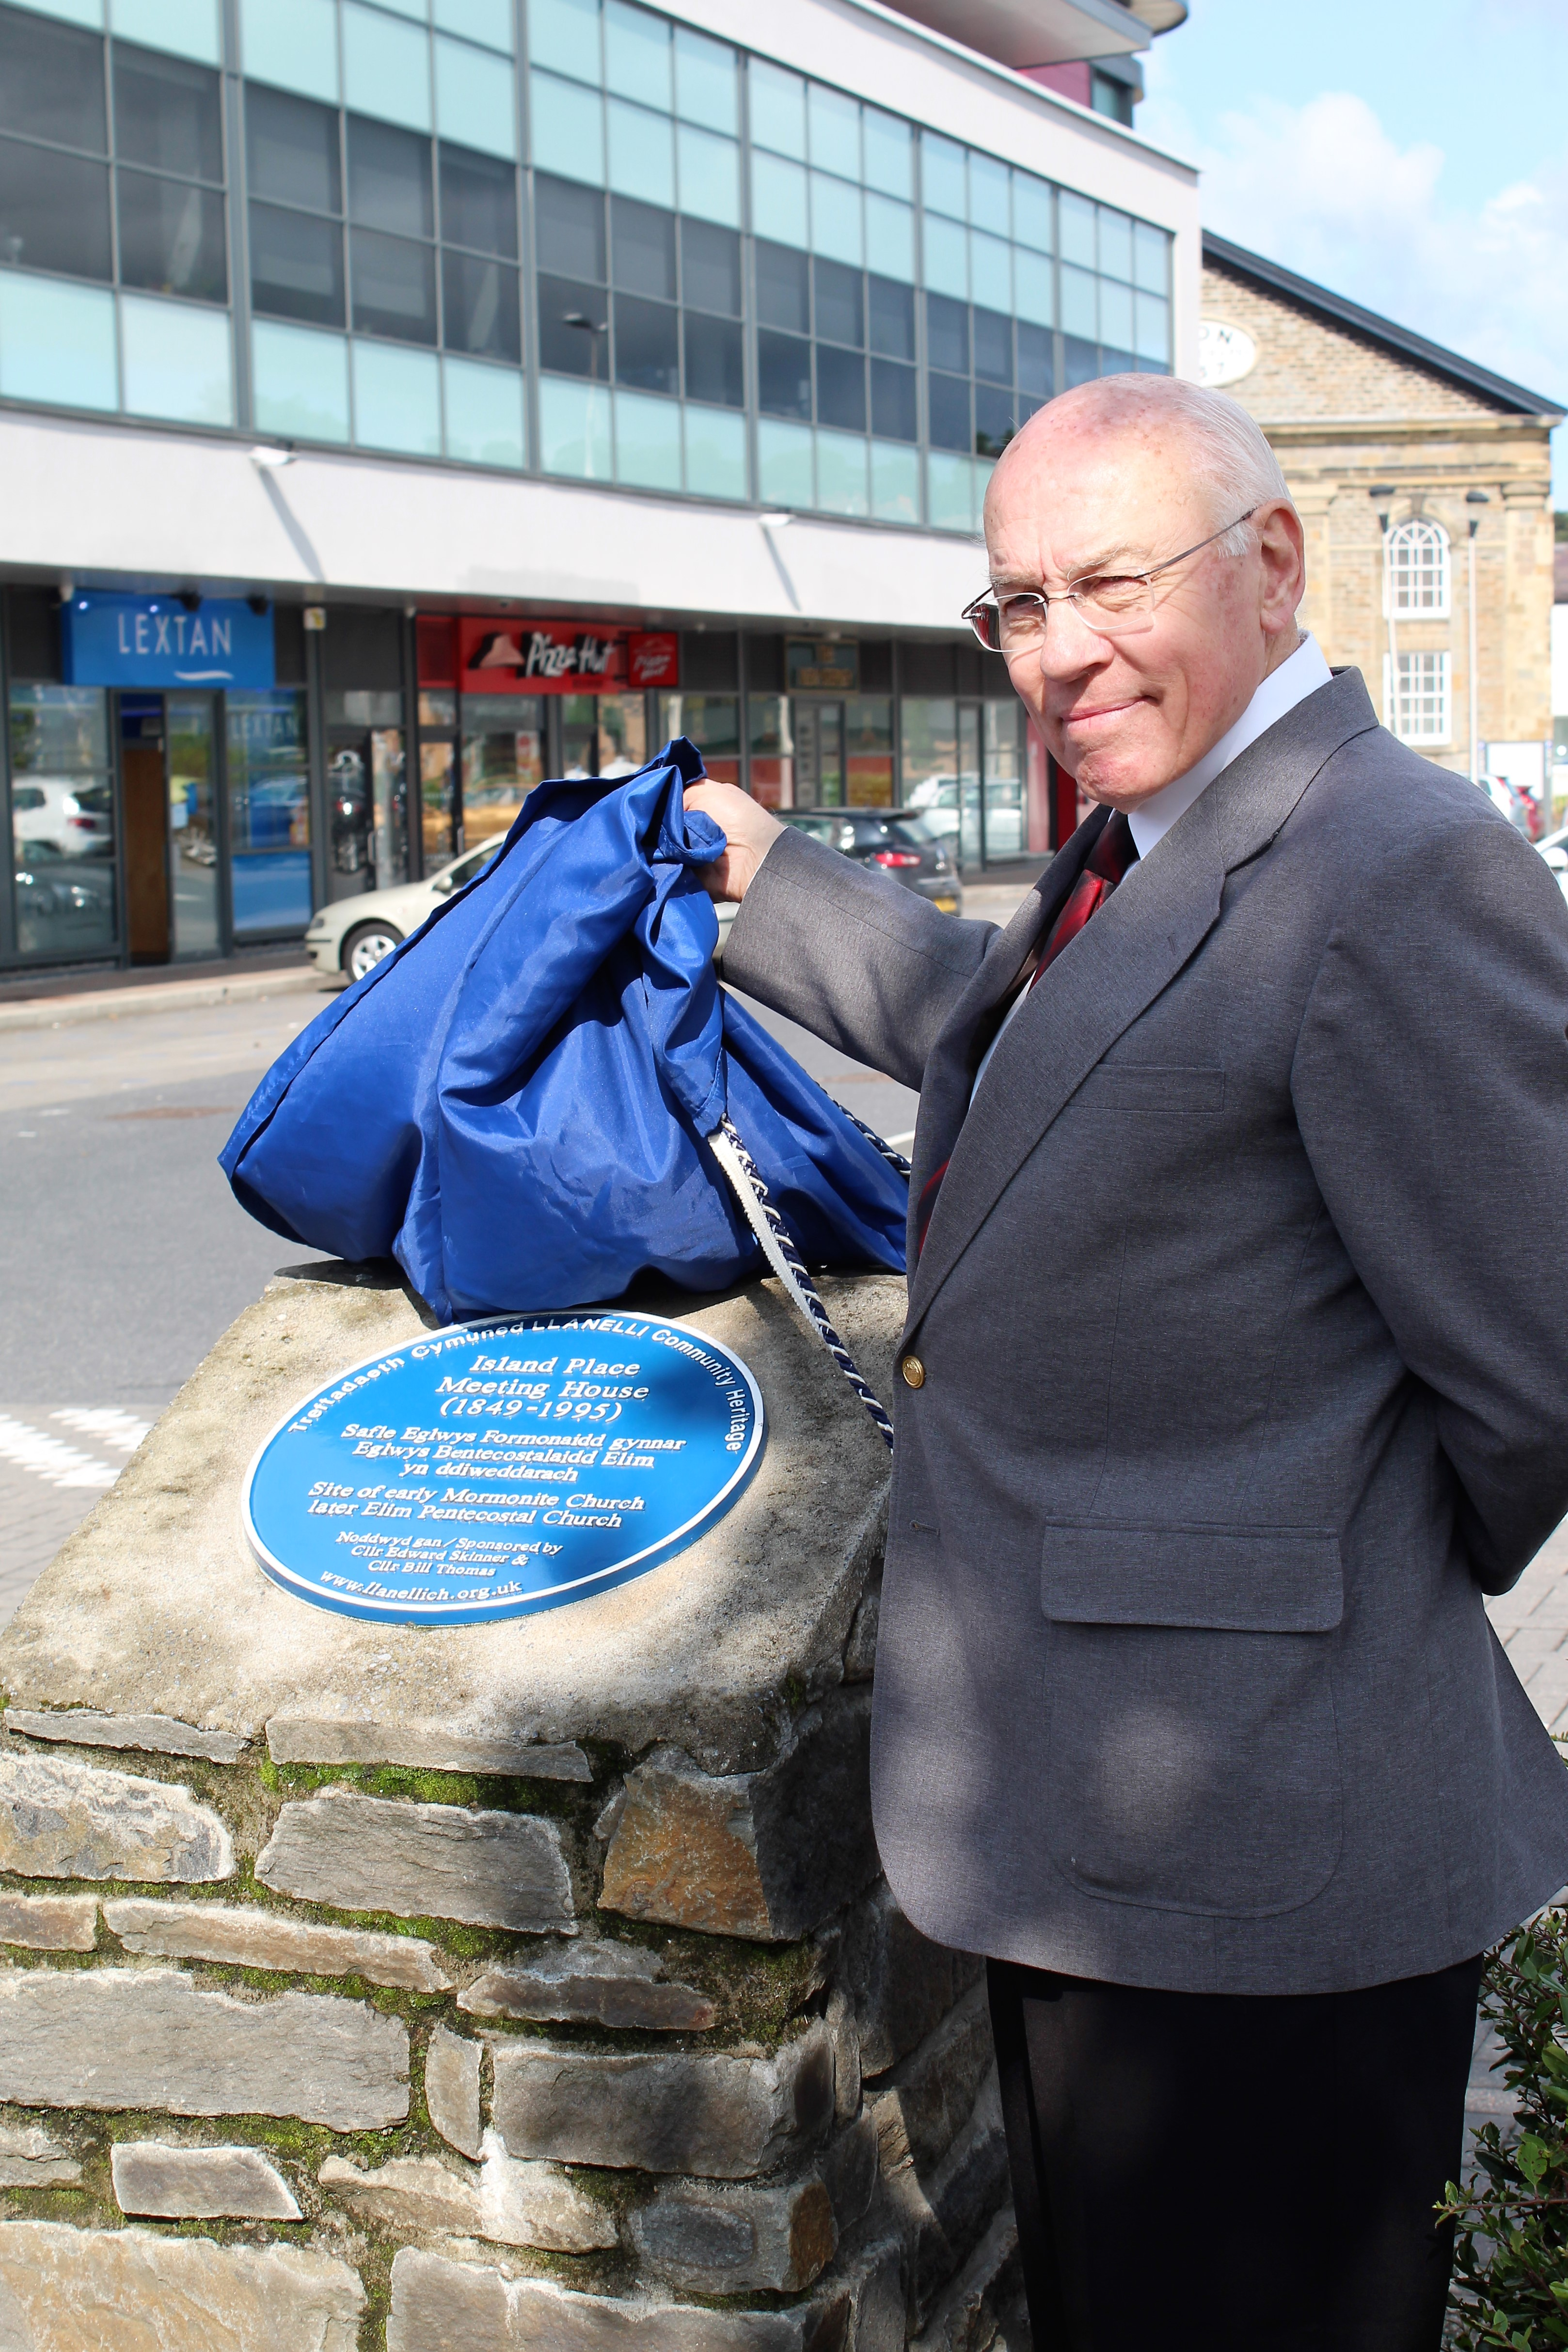 Dr. Ronald Dennis unveils the blue plaque to commemorate the historic Church building known as the Island Place Meeting House on Aug. 25, 2018, in Llanelli, Wales.